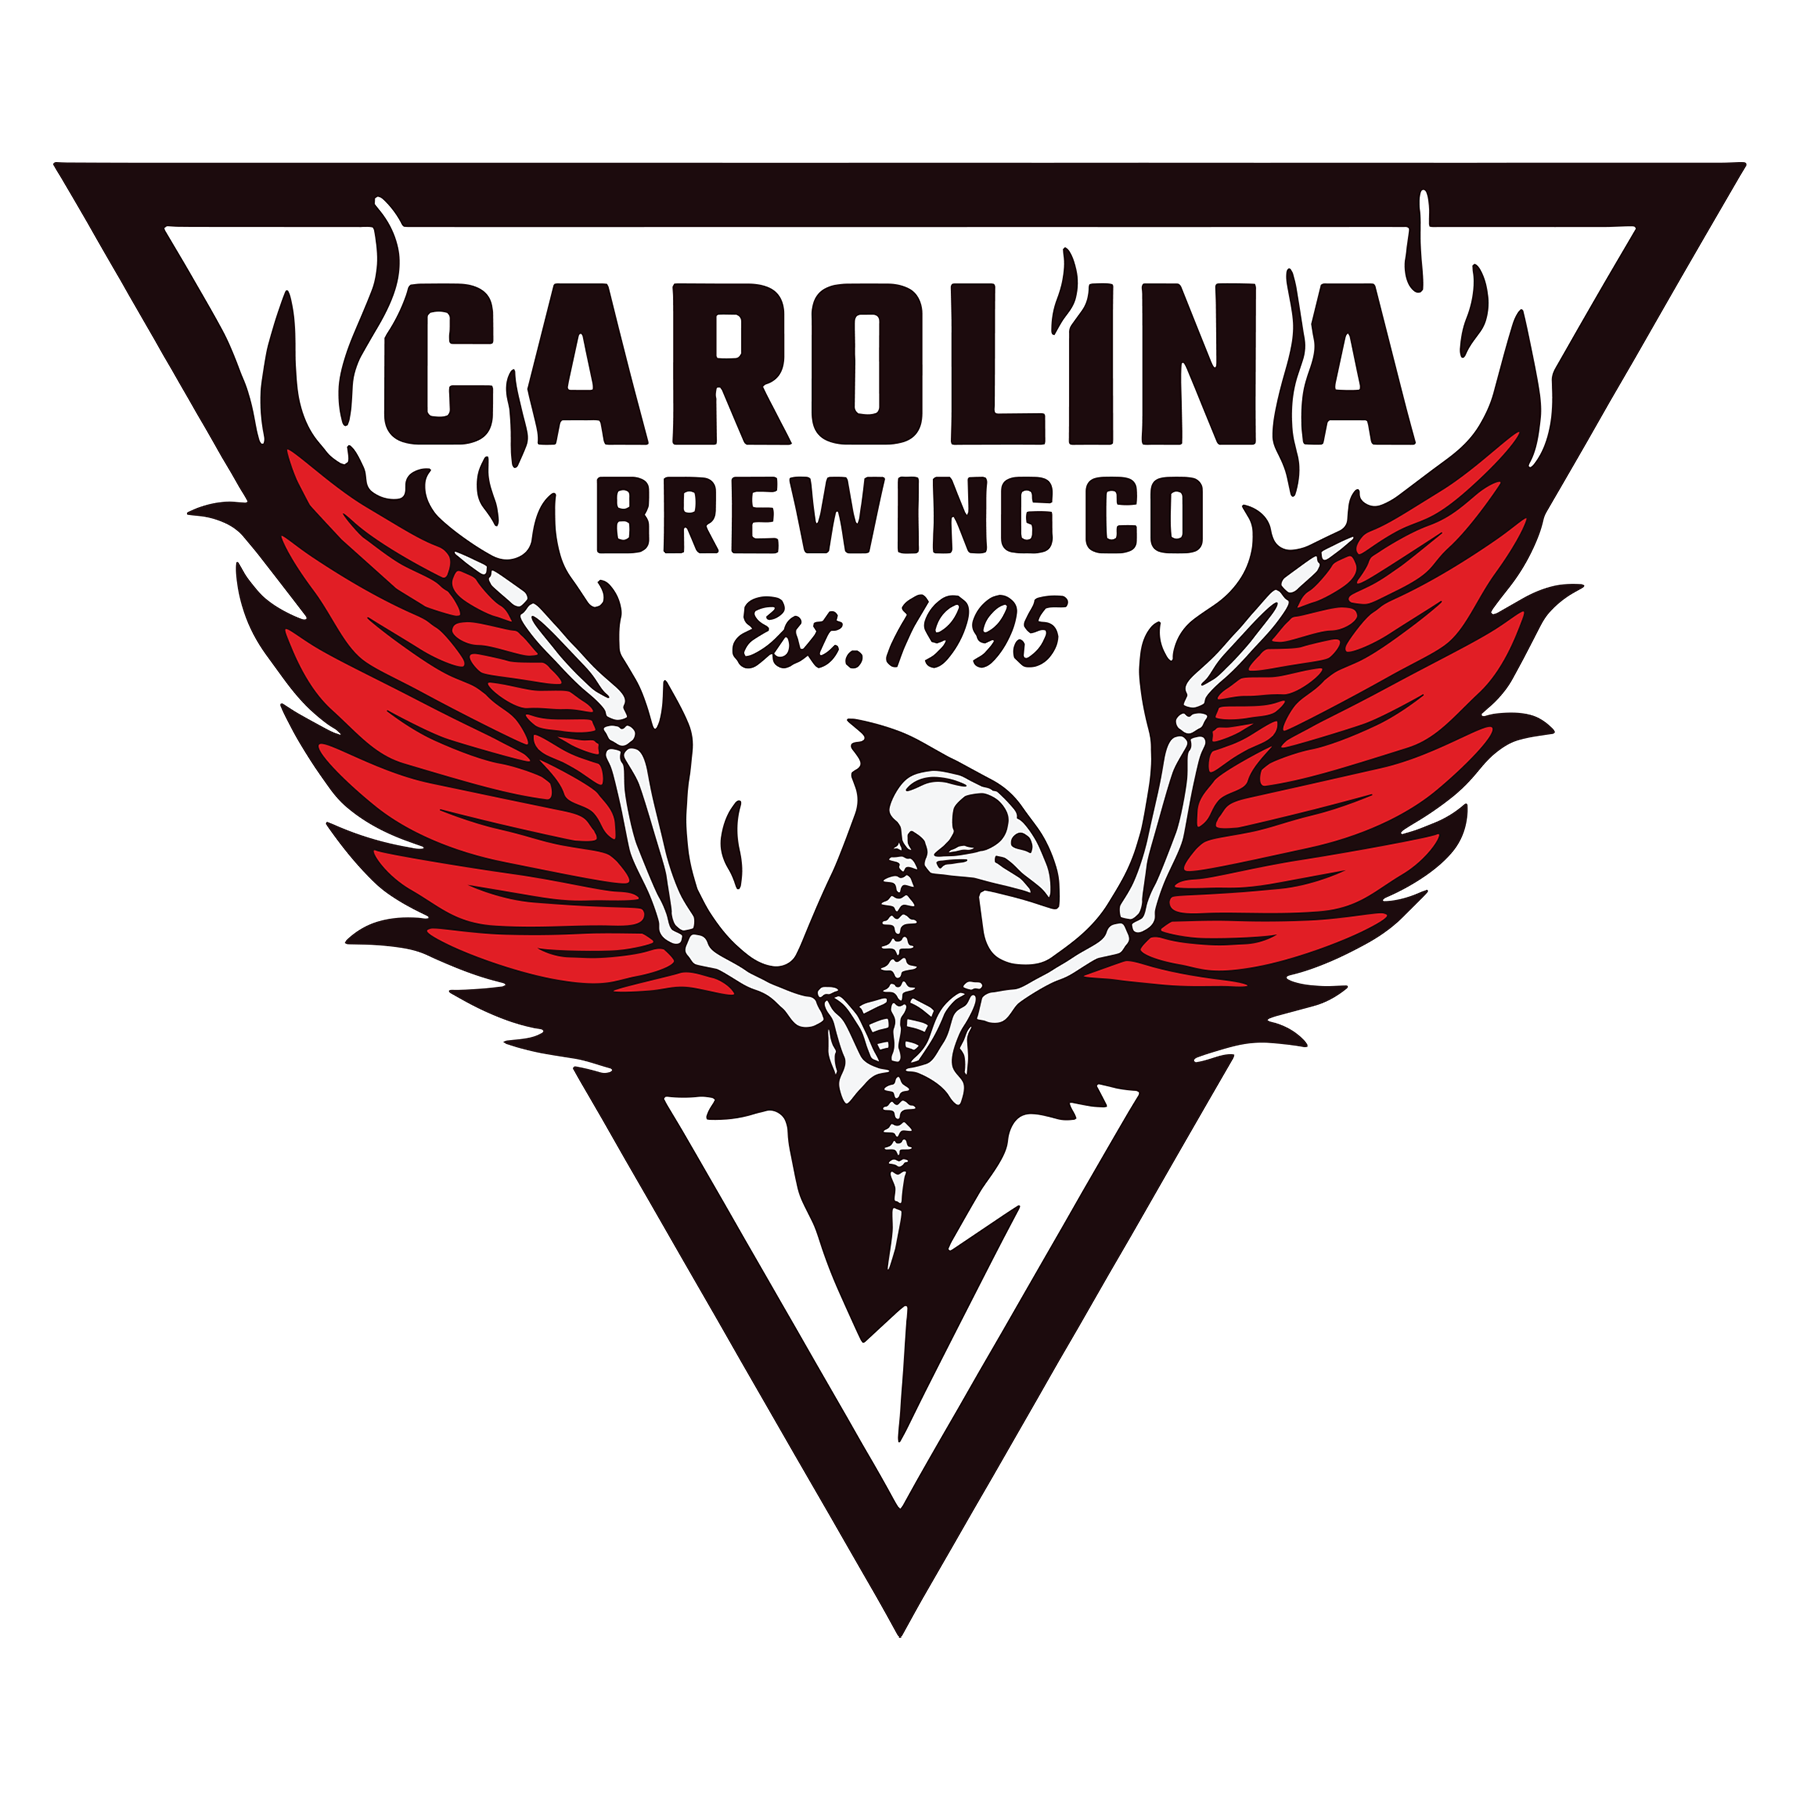 carolina-brewing_main-logo_two-color_for-light-background